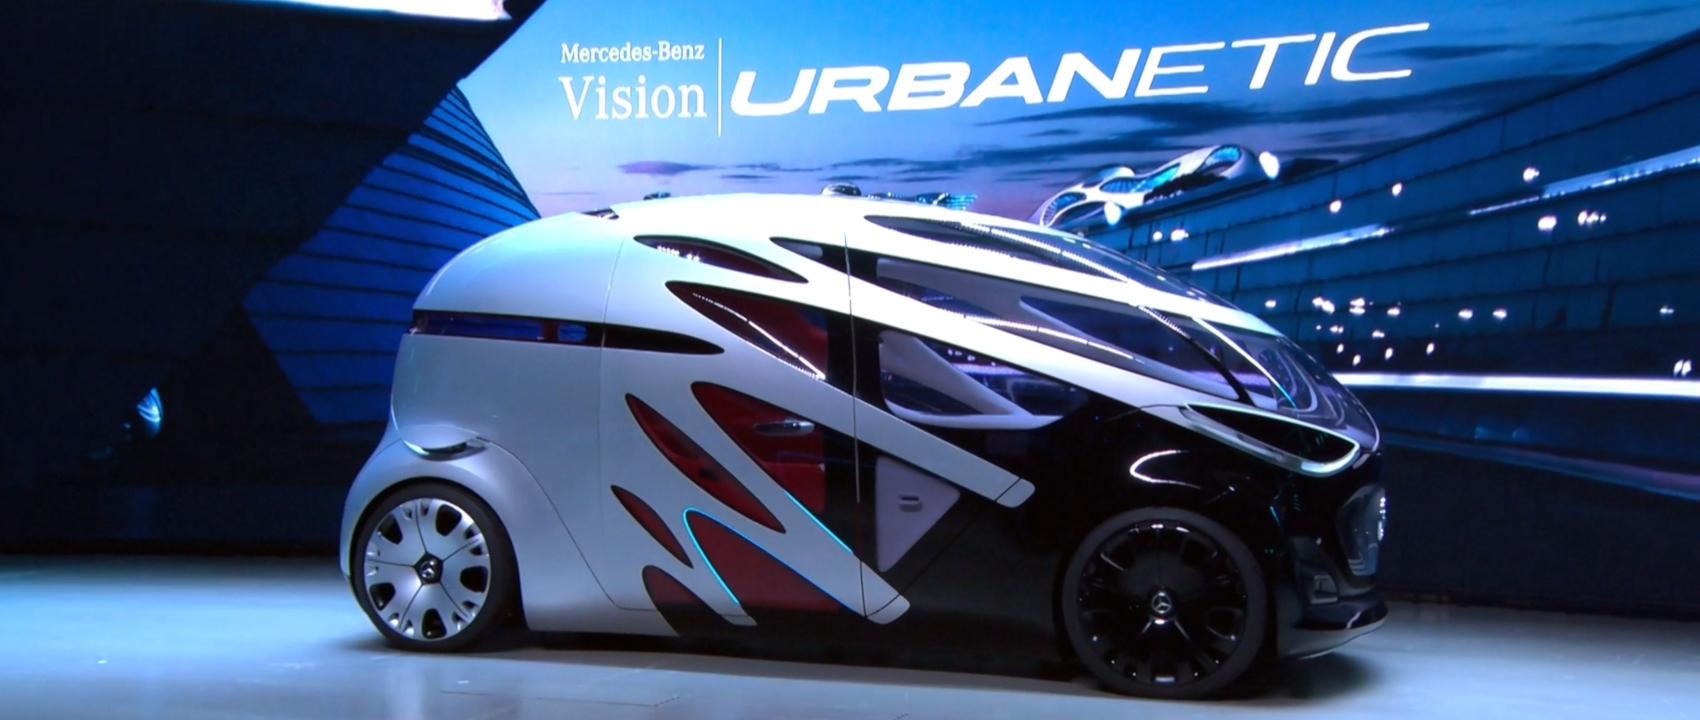 Mercedes-Benz Prepares for Future Mobility with Vision Urbanetic Van